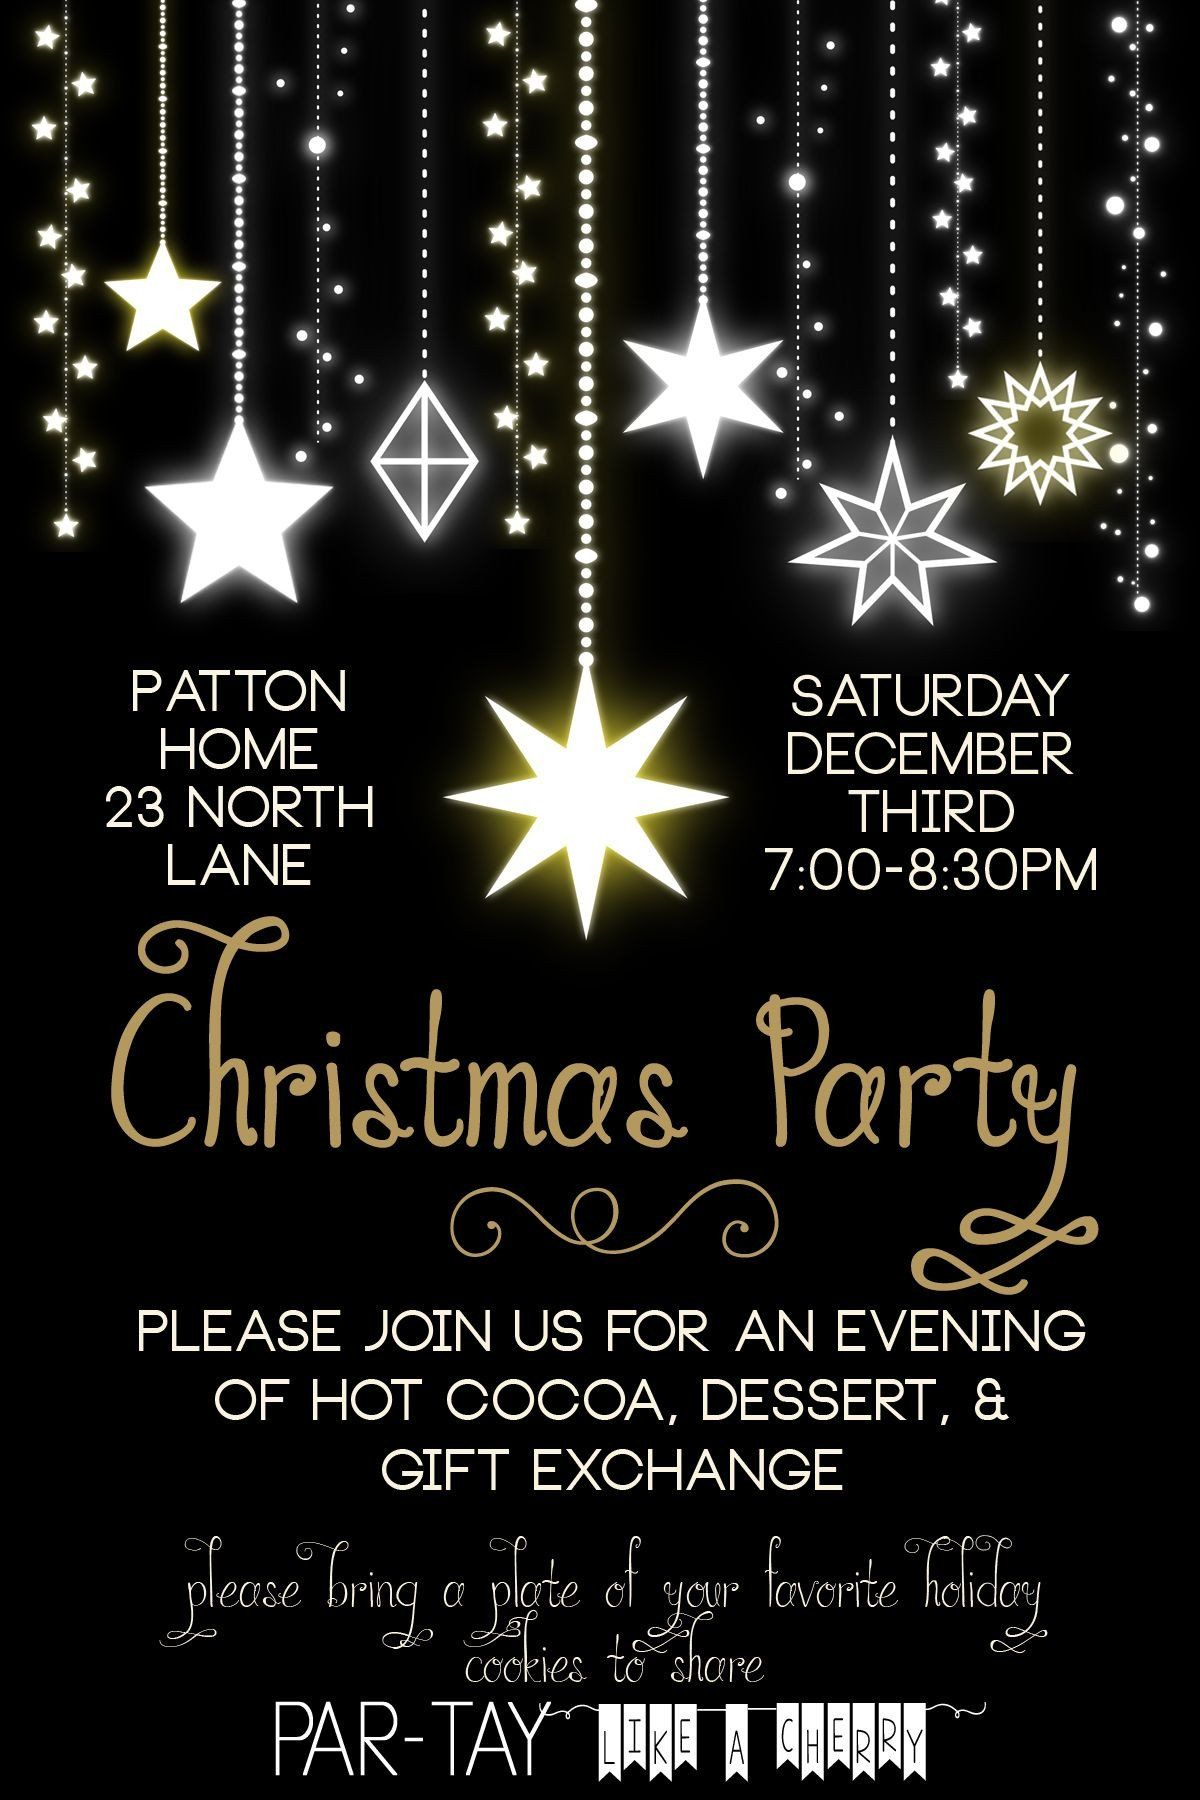 Christmas Party Template Free Christmas Party Invitati Christmas Party Invitation Template Elegant Christmas Party Invitations Christmas Party Invitations Free